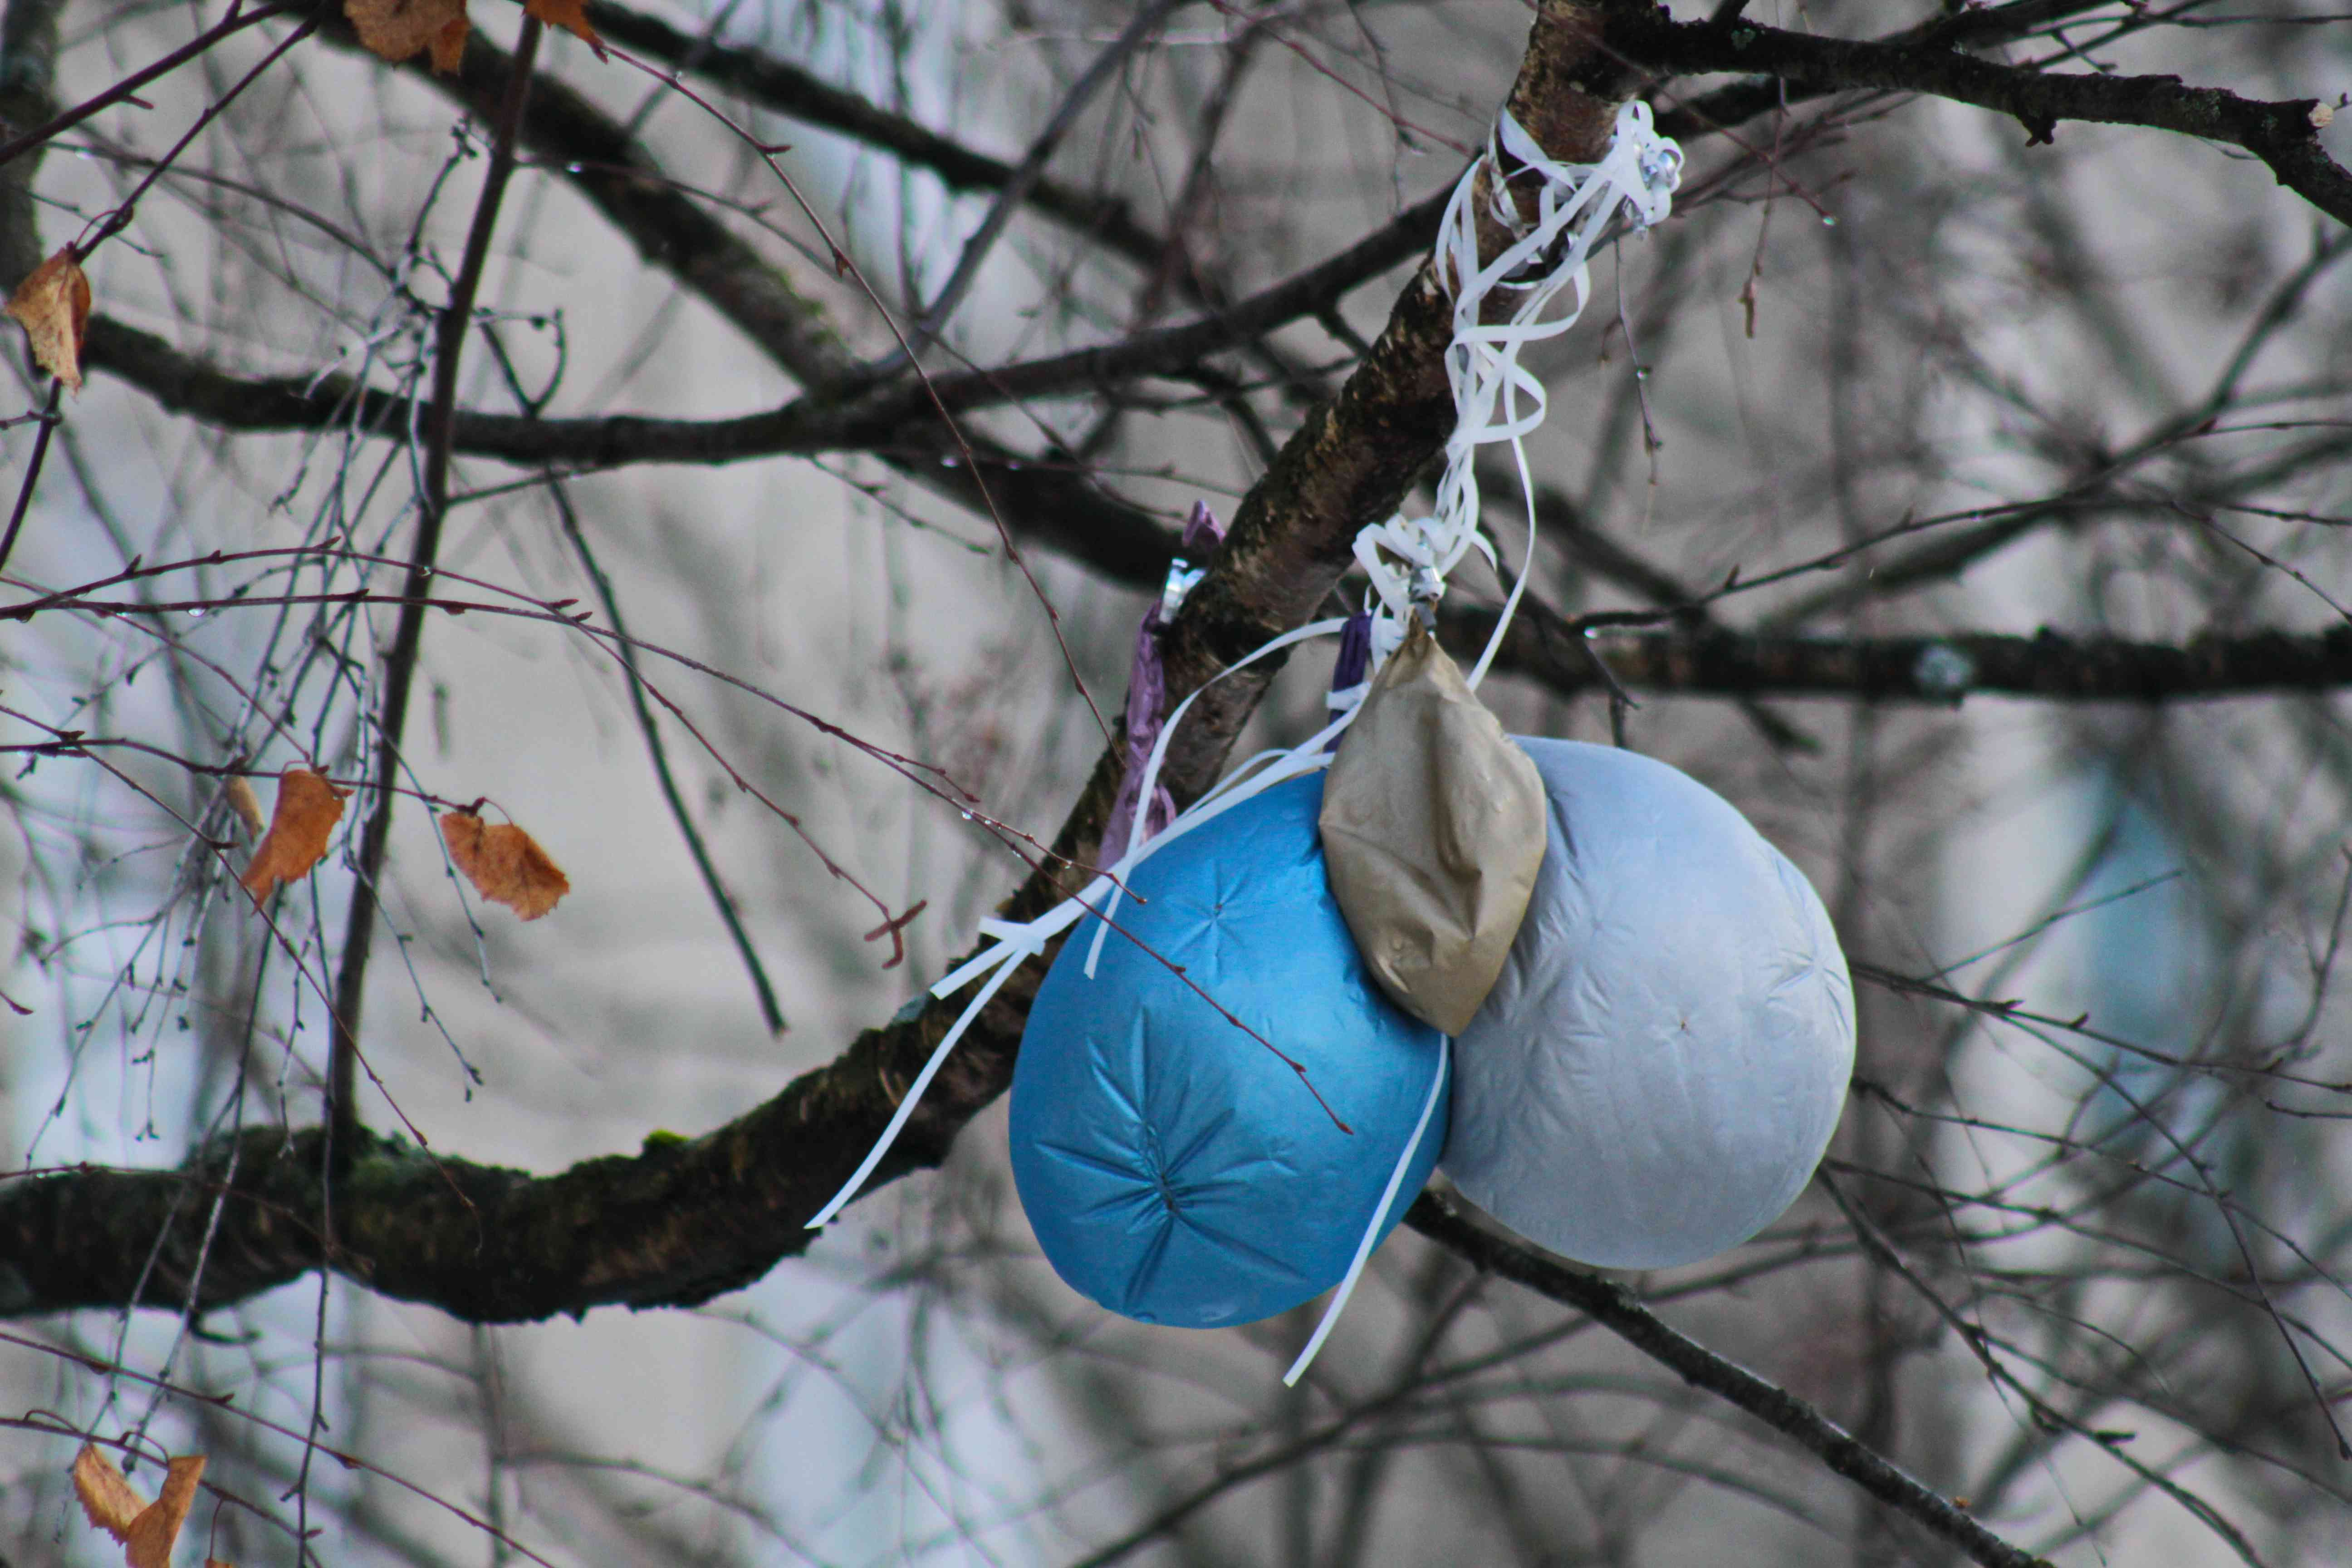 balloons on tree branch, danger to birds and animals